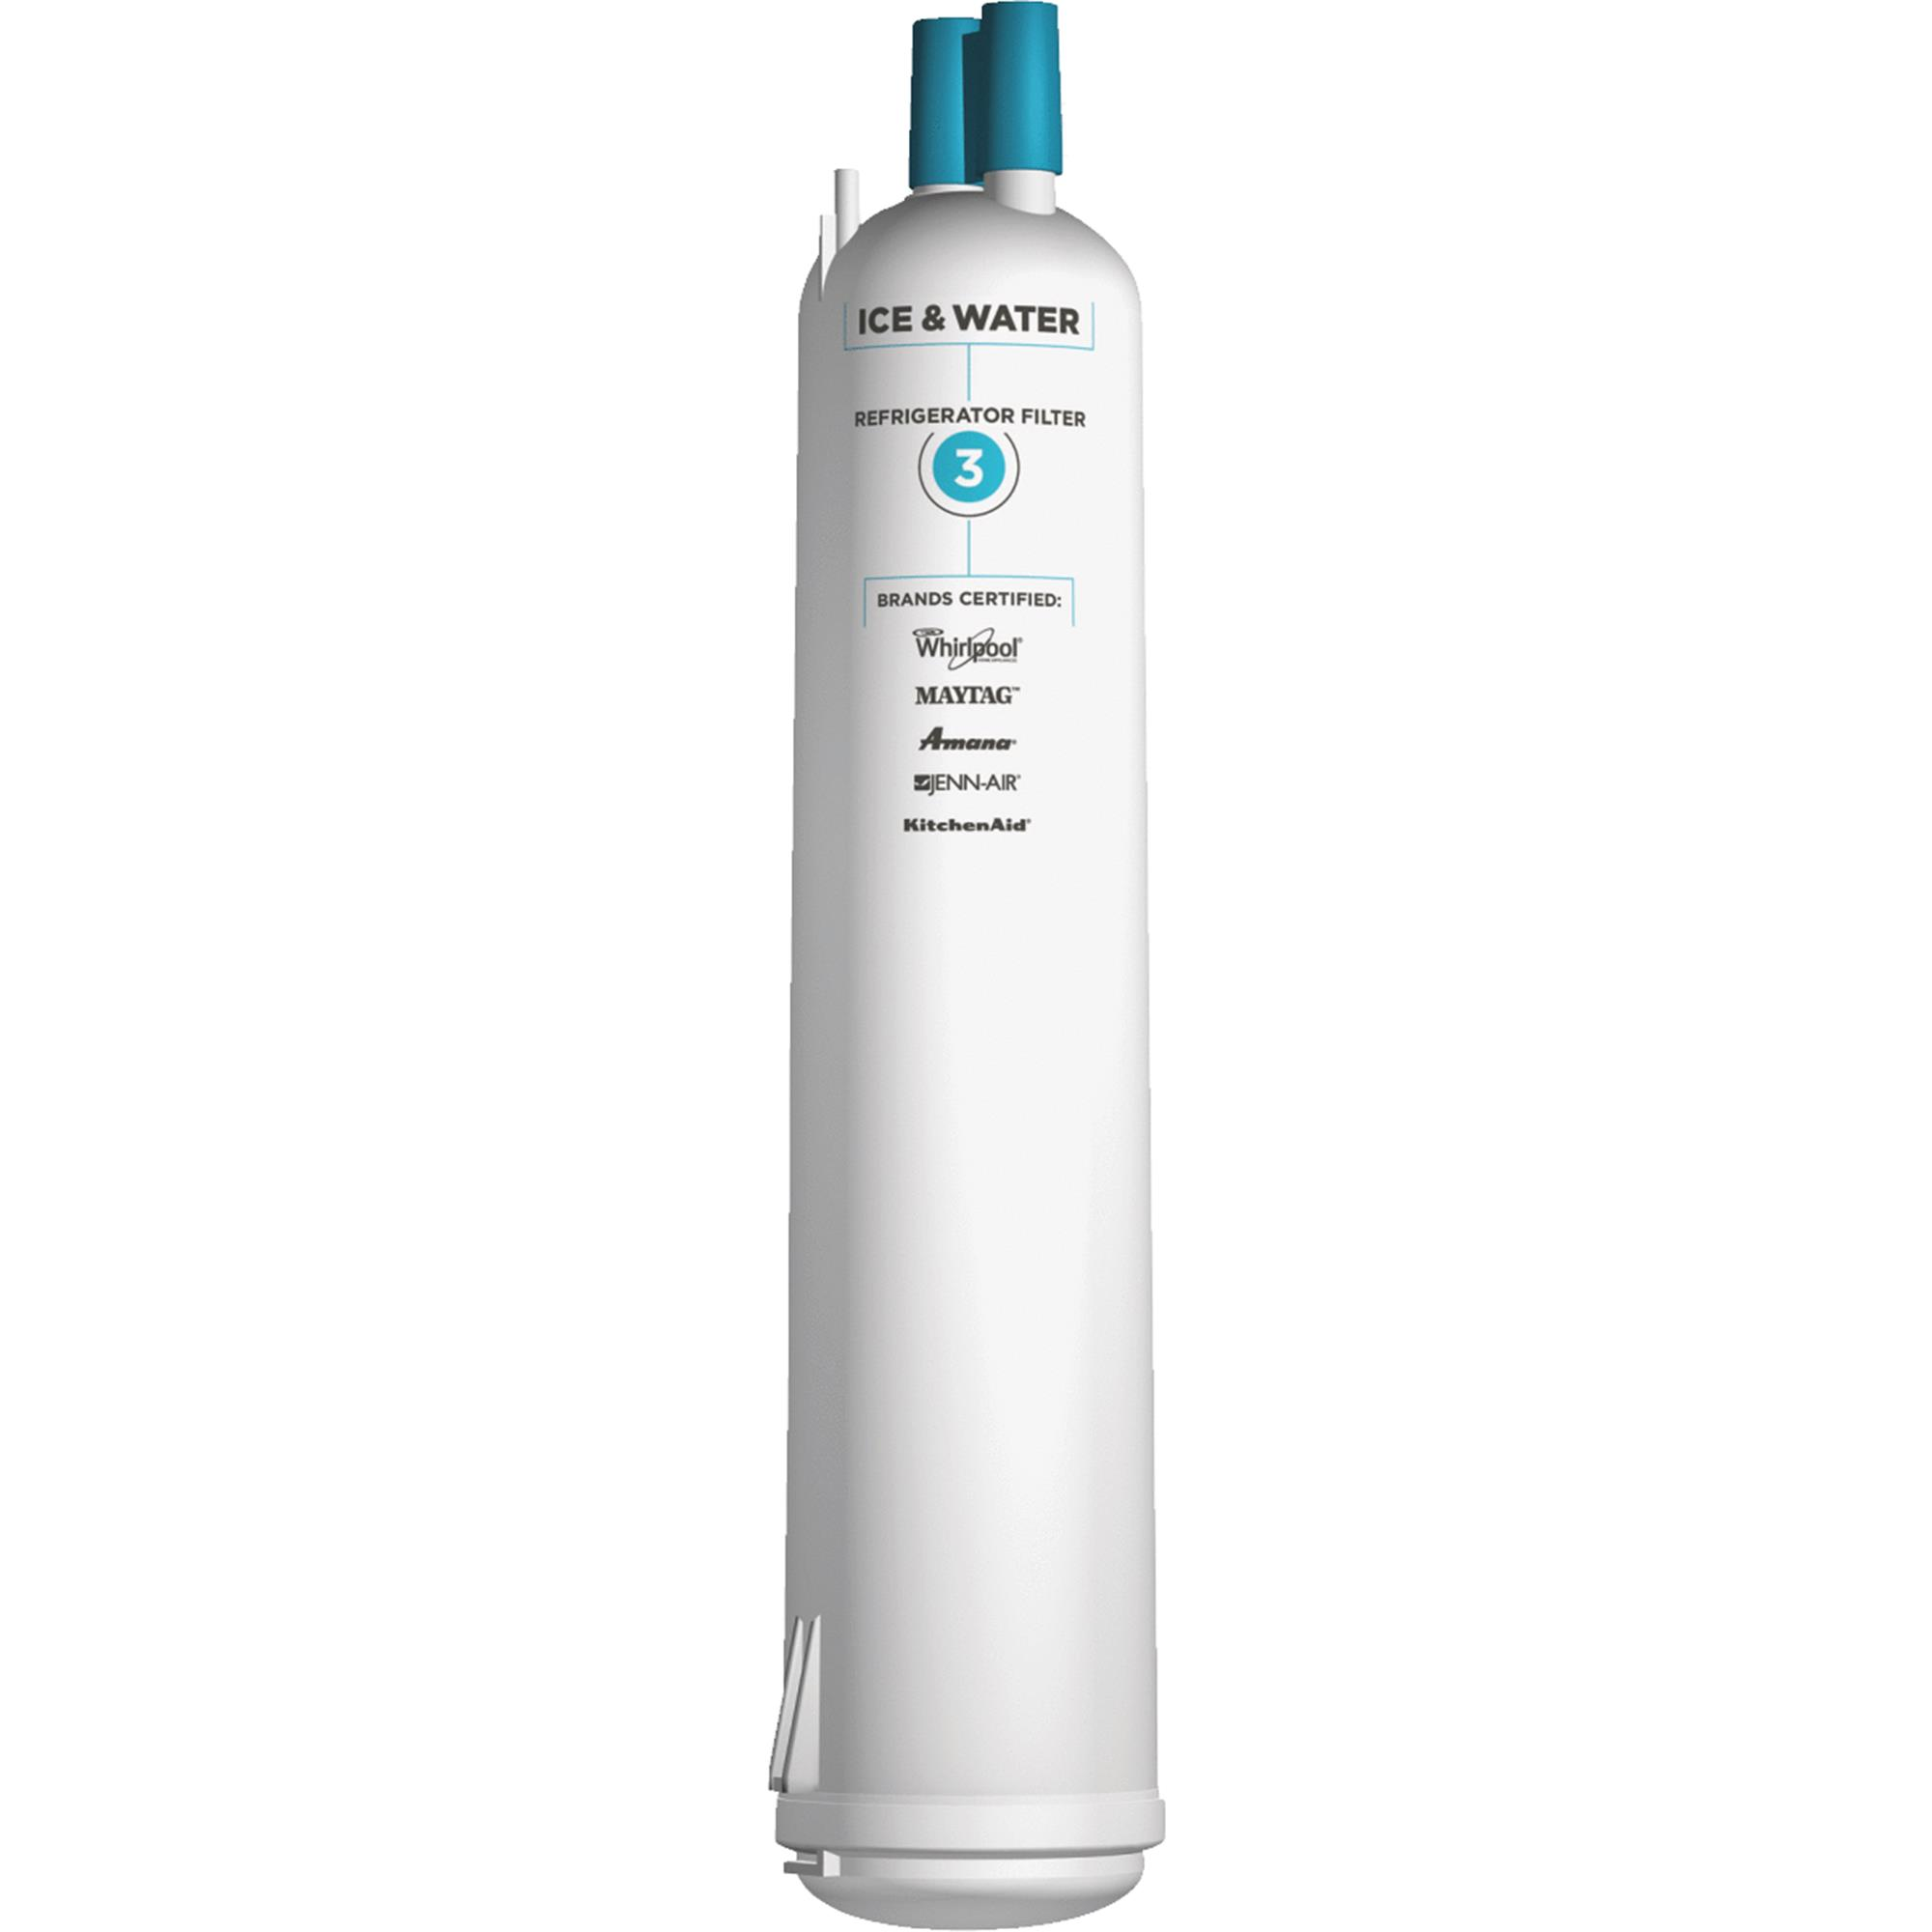 everydrop by whirlpool filter 3 icemaker u0026 water filter cartridge - Water Filter Cartridge